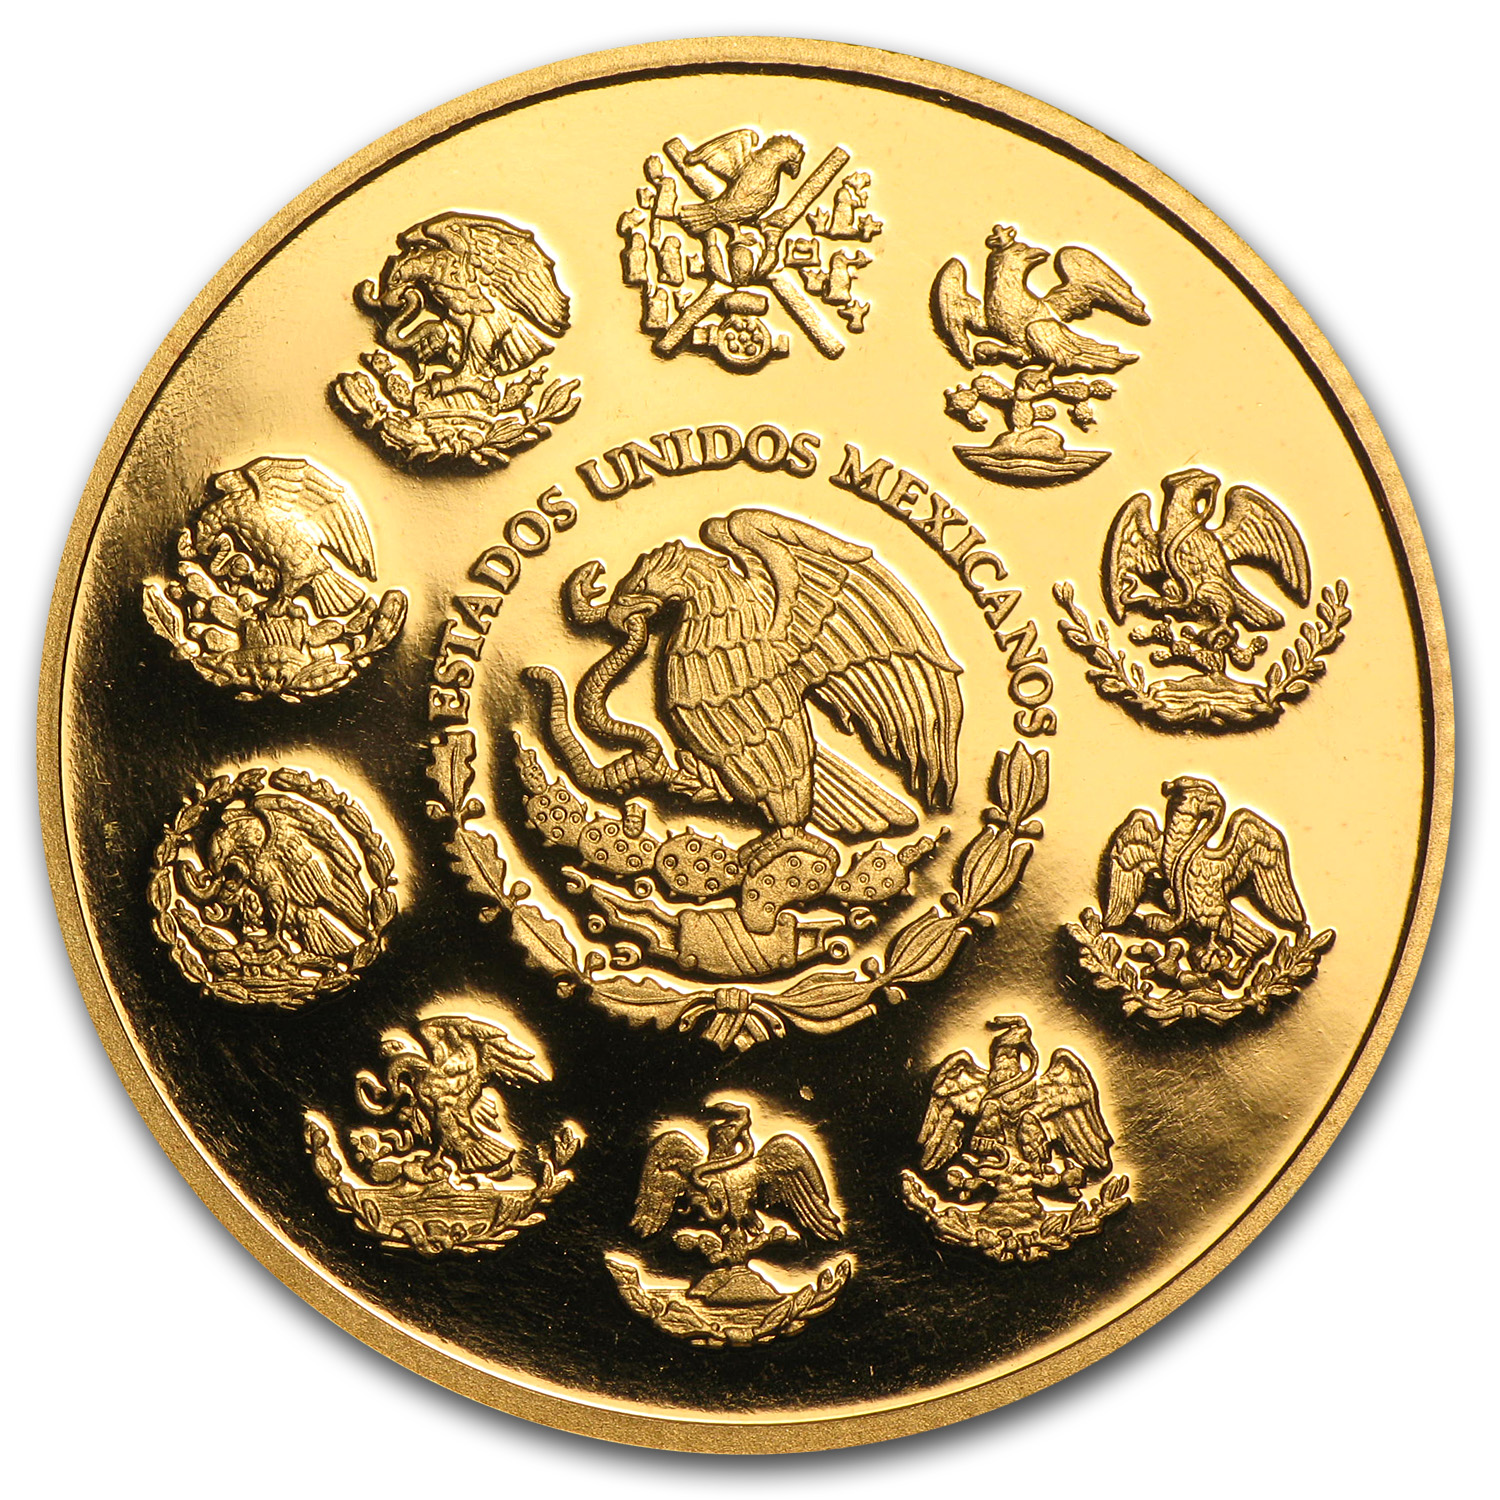 2010 1 oz Gold Mexican Libertad - Proof